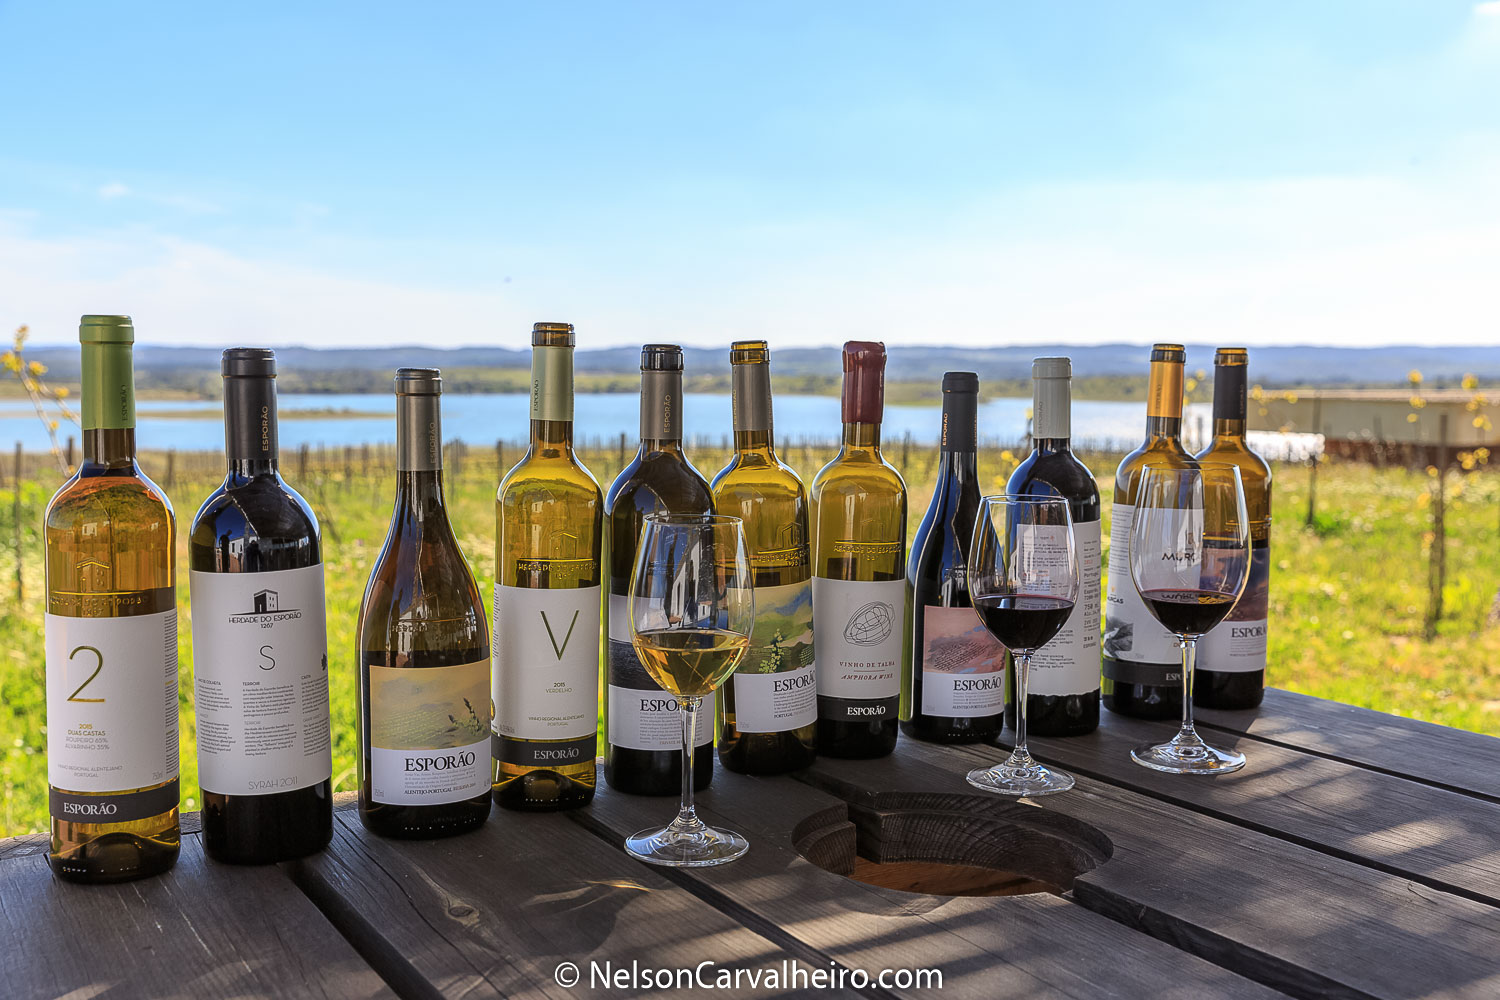 Nelson_Carvalheiro_Alentejo_Wine_Travel_Guide_Herdade_do_Esporão